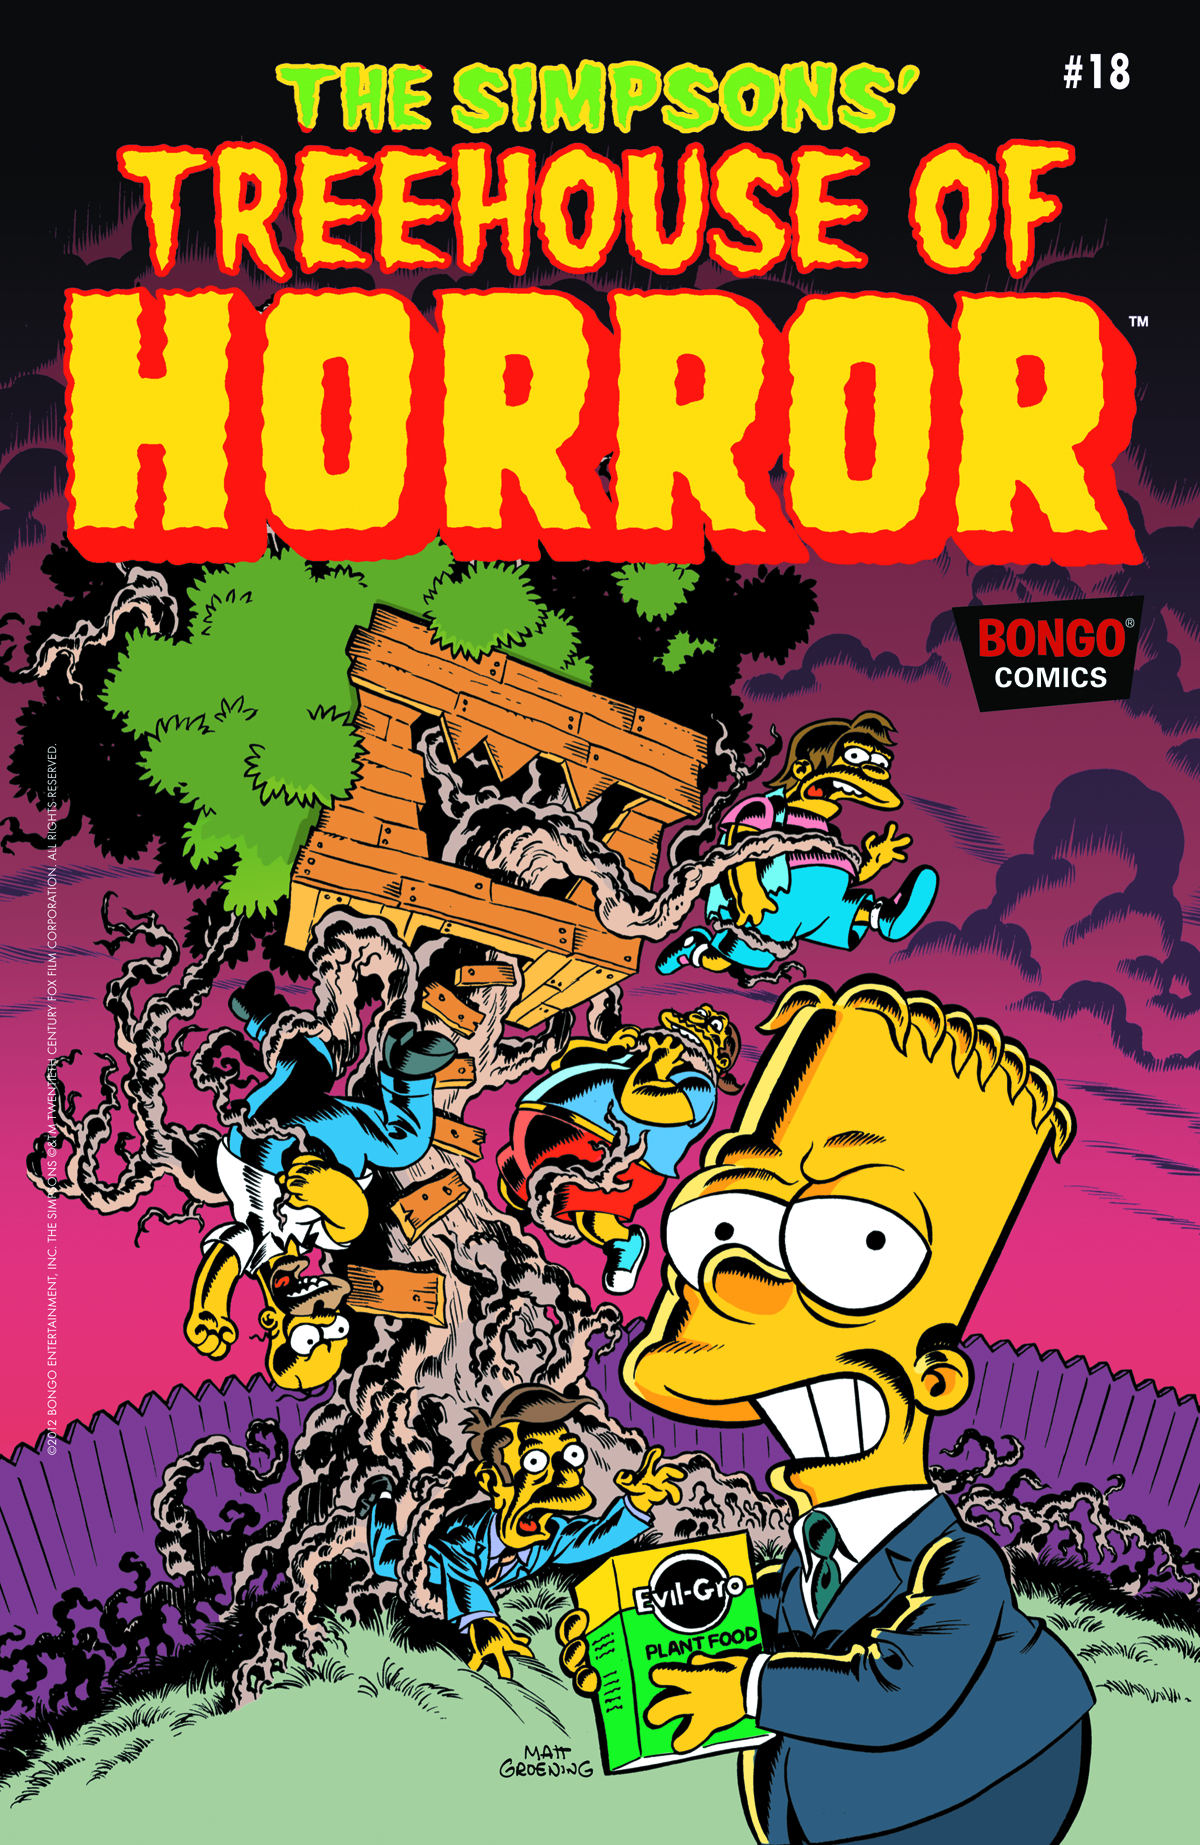 PREVIEWSworld - SIMPSONS TREEHOUSE OF HORROR #18